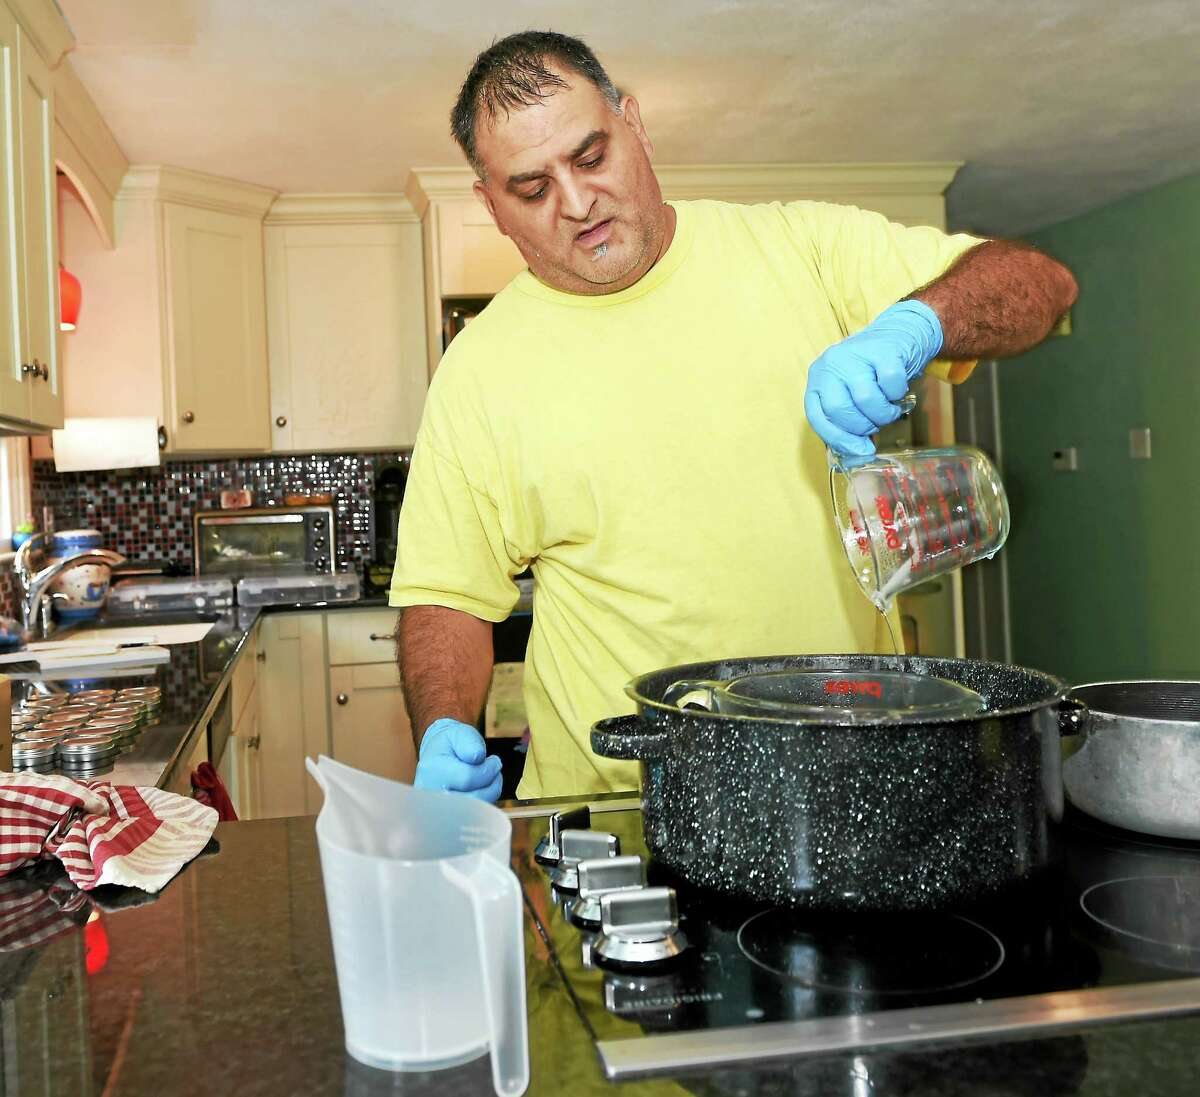 (Peter Hvizdak - New Haven Register) Chad Minervini of Durham, owner of Mini Bees, LLC, makes his own base oil for Buzzle Balm, an all natural lip balm, in his home kitchen. It took Minervini one-year working diligently to create his own formula for Buzzle Balm and his product line of body butters. Today he has 17 different flavors of lip balm. HIs company will soon introduce a line of bath salts, facial scrubs and body scrubs. Friday October 9, 2015.